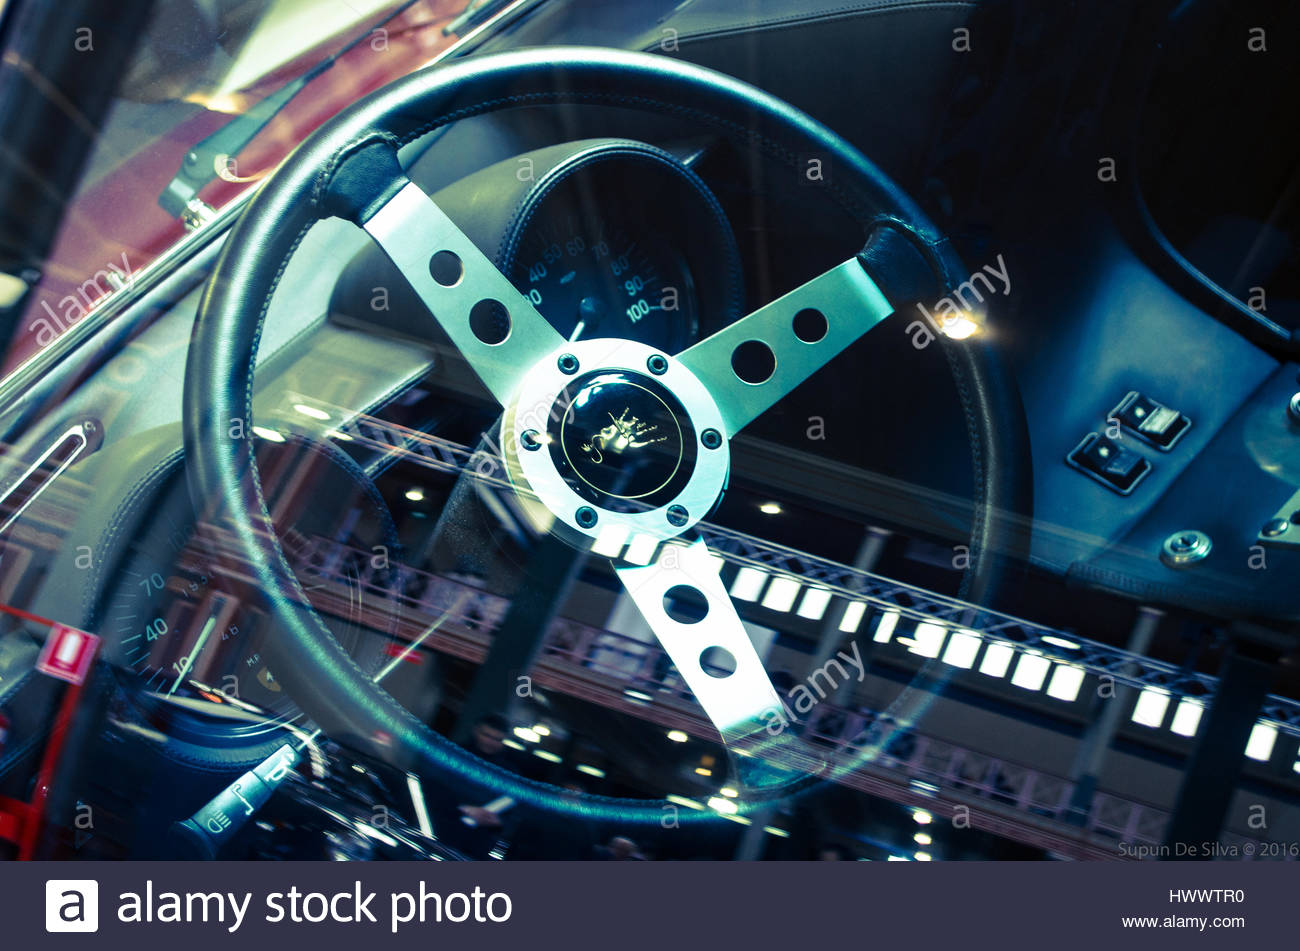 Lamborghini Miura Sv Interior Stock Photo 136407236 Alamy